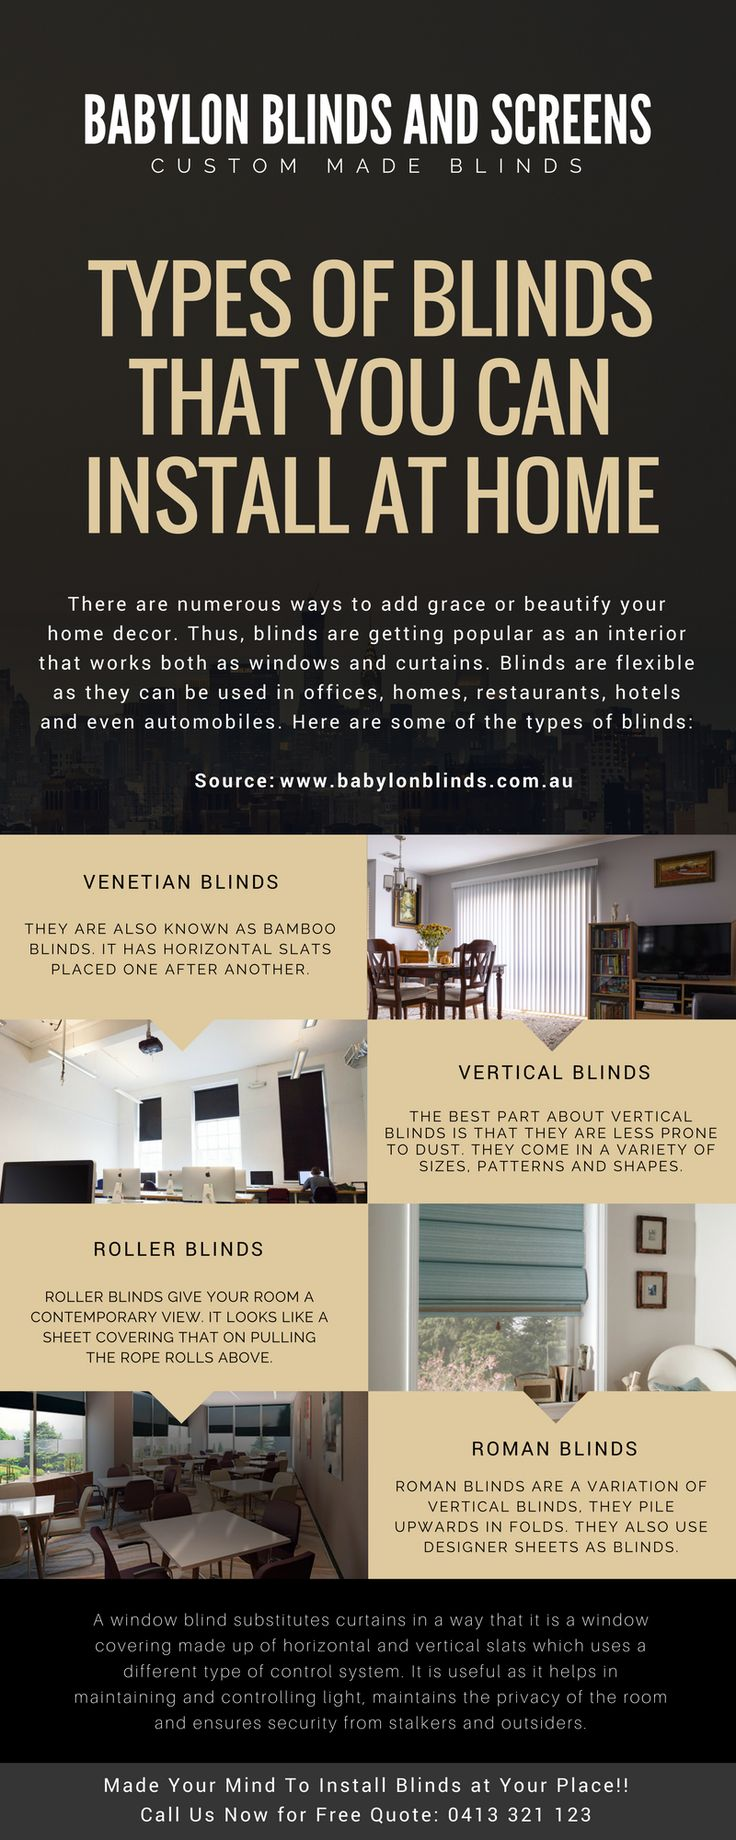 Types of Blinds That You Can Install At Home #Rollerblinds, #verticalblinds, #venetianblinds and #romanblinds are some of the types of #blinds. Made Your Mind to Install Blinds at Your Place!! Call Us Now for Free Quote: 0413 321 123